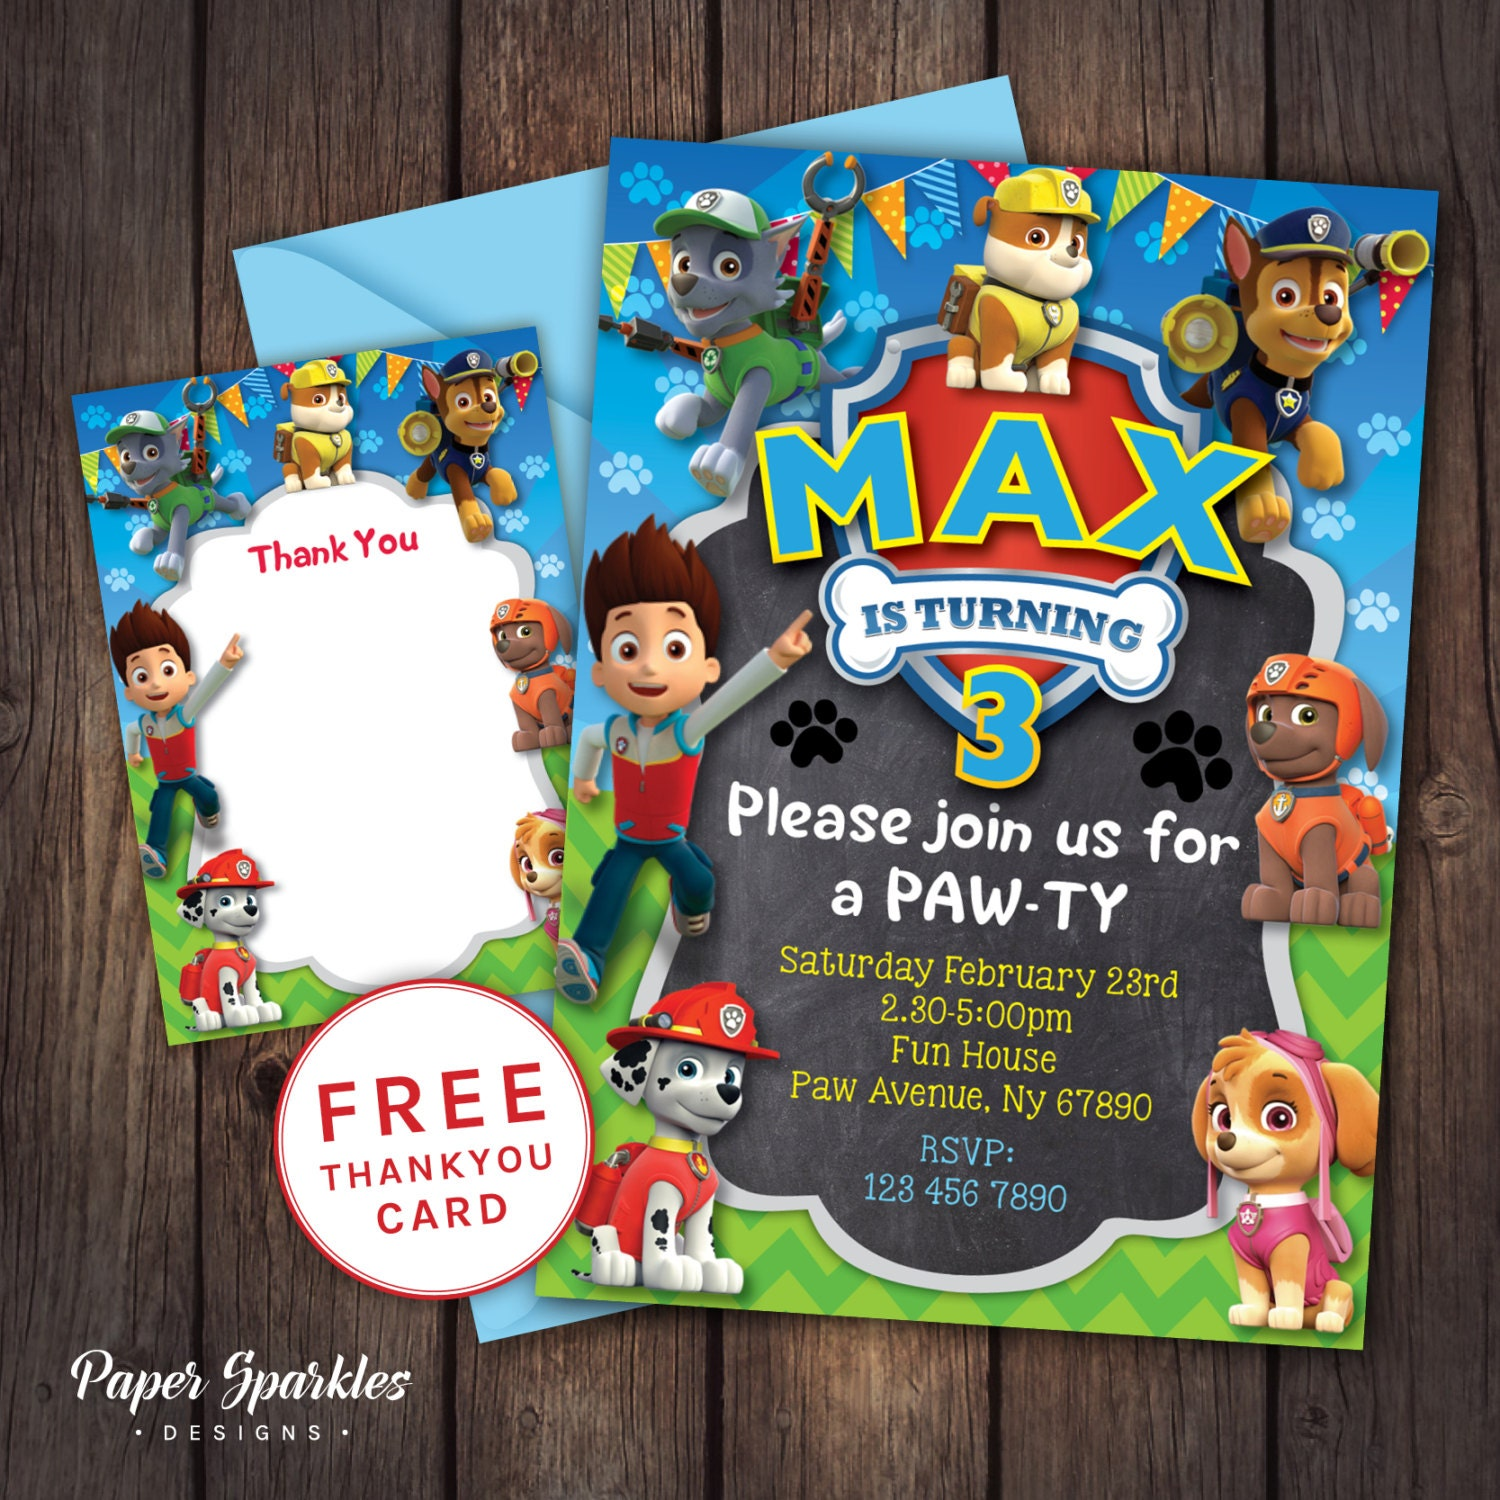 Paw patrol party paw patrol invitation paw by papersparkledesigns for Paw patrol invitation ideas